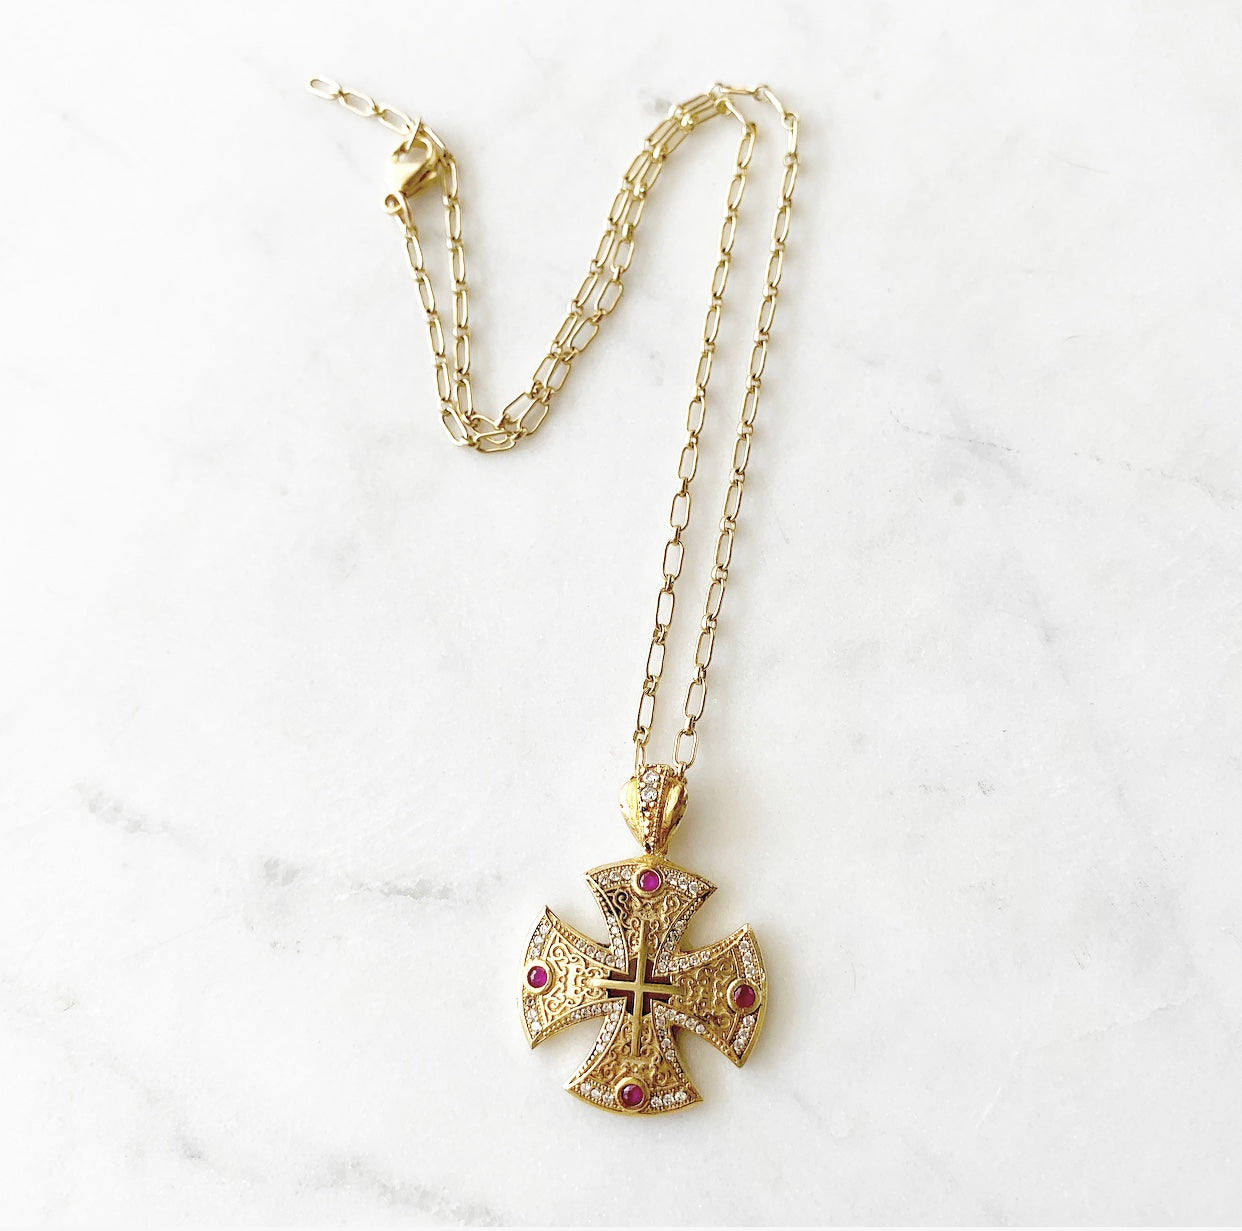 heather matjasic ohm jewelry shop gold sterling silver canterbury cross turkey usa florida gold necklace